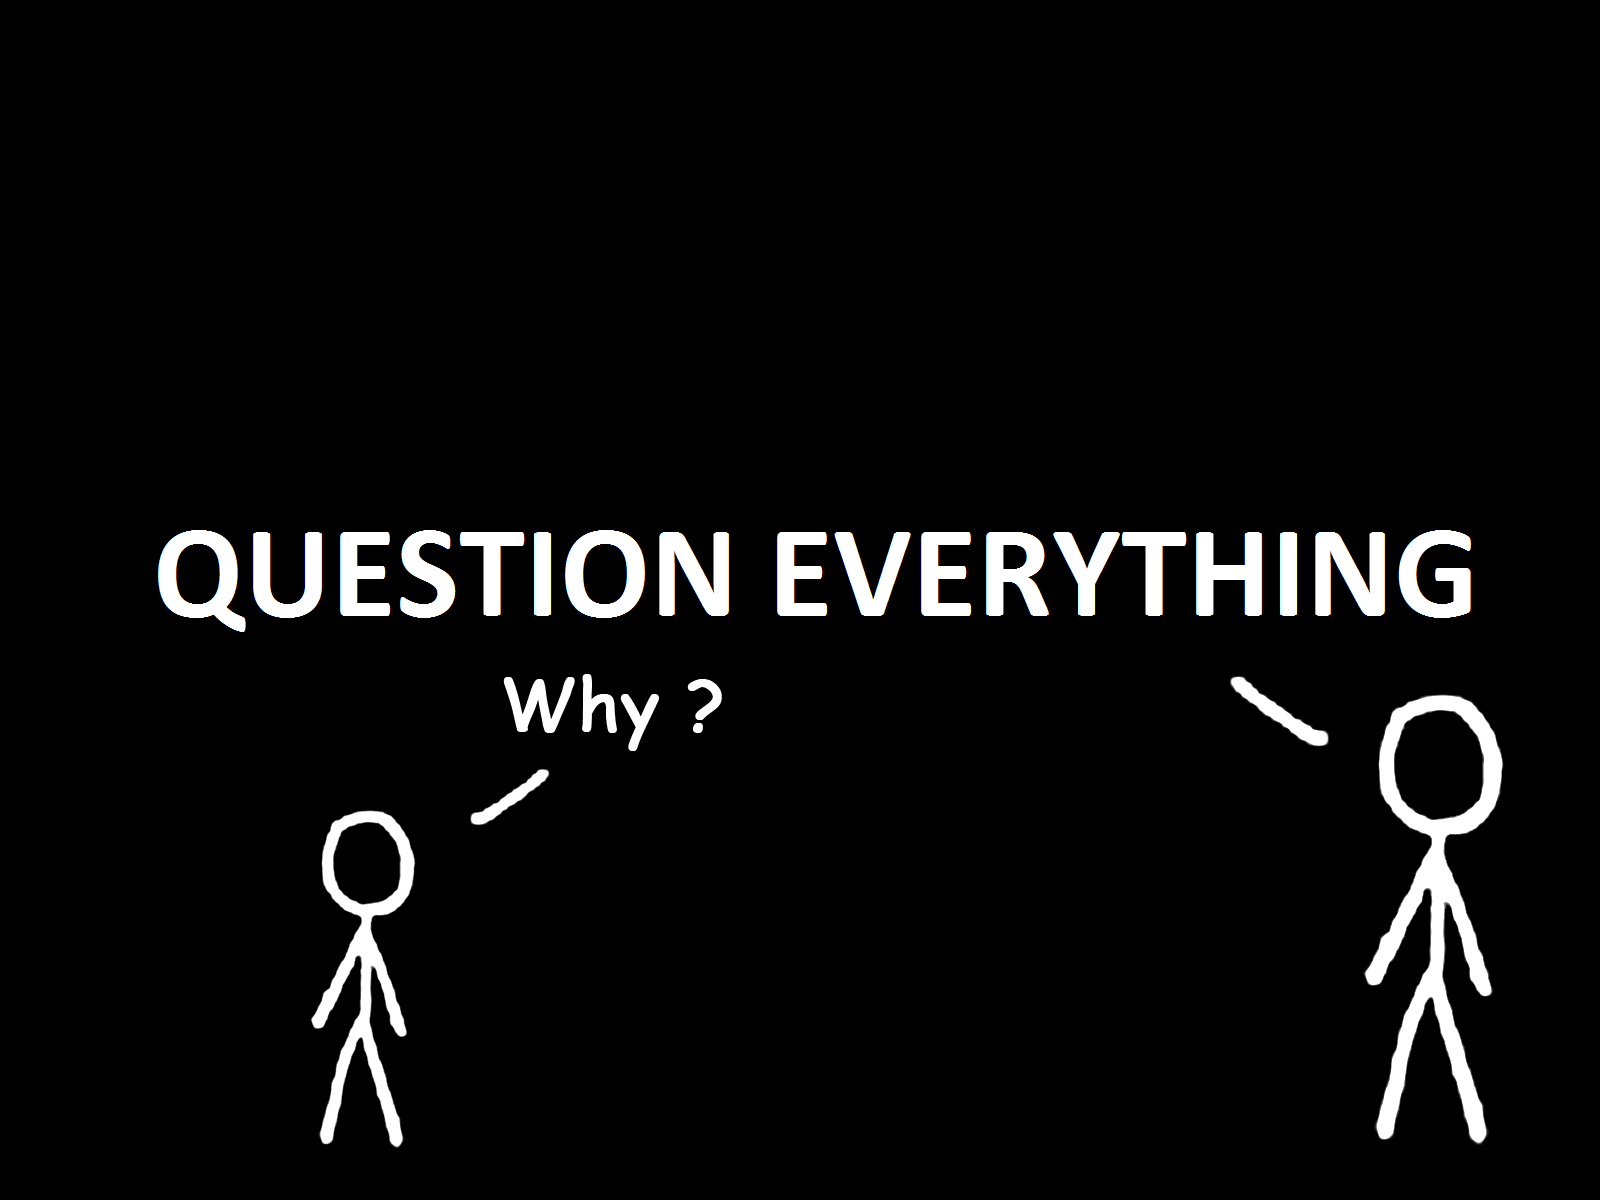 xkcd comics nerd philosophy HD Wallpaper